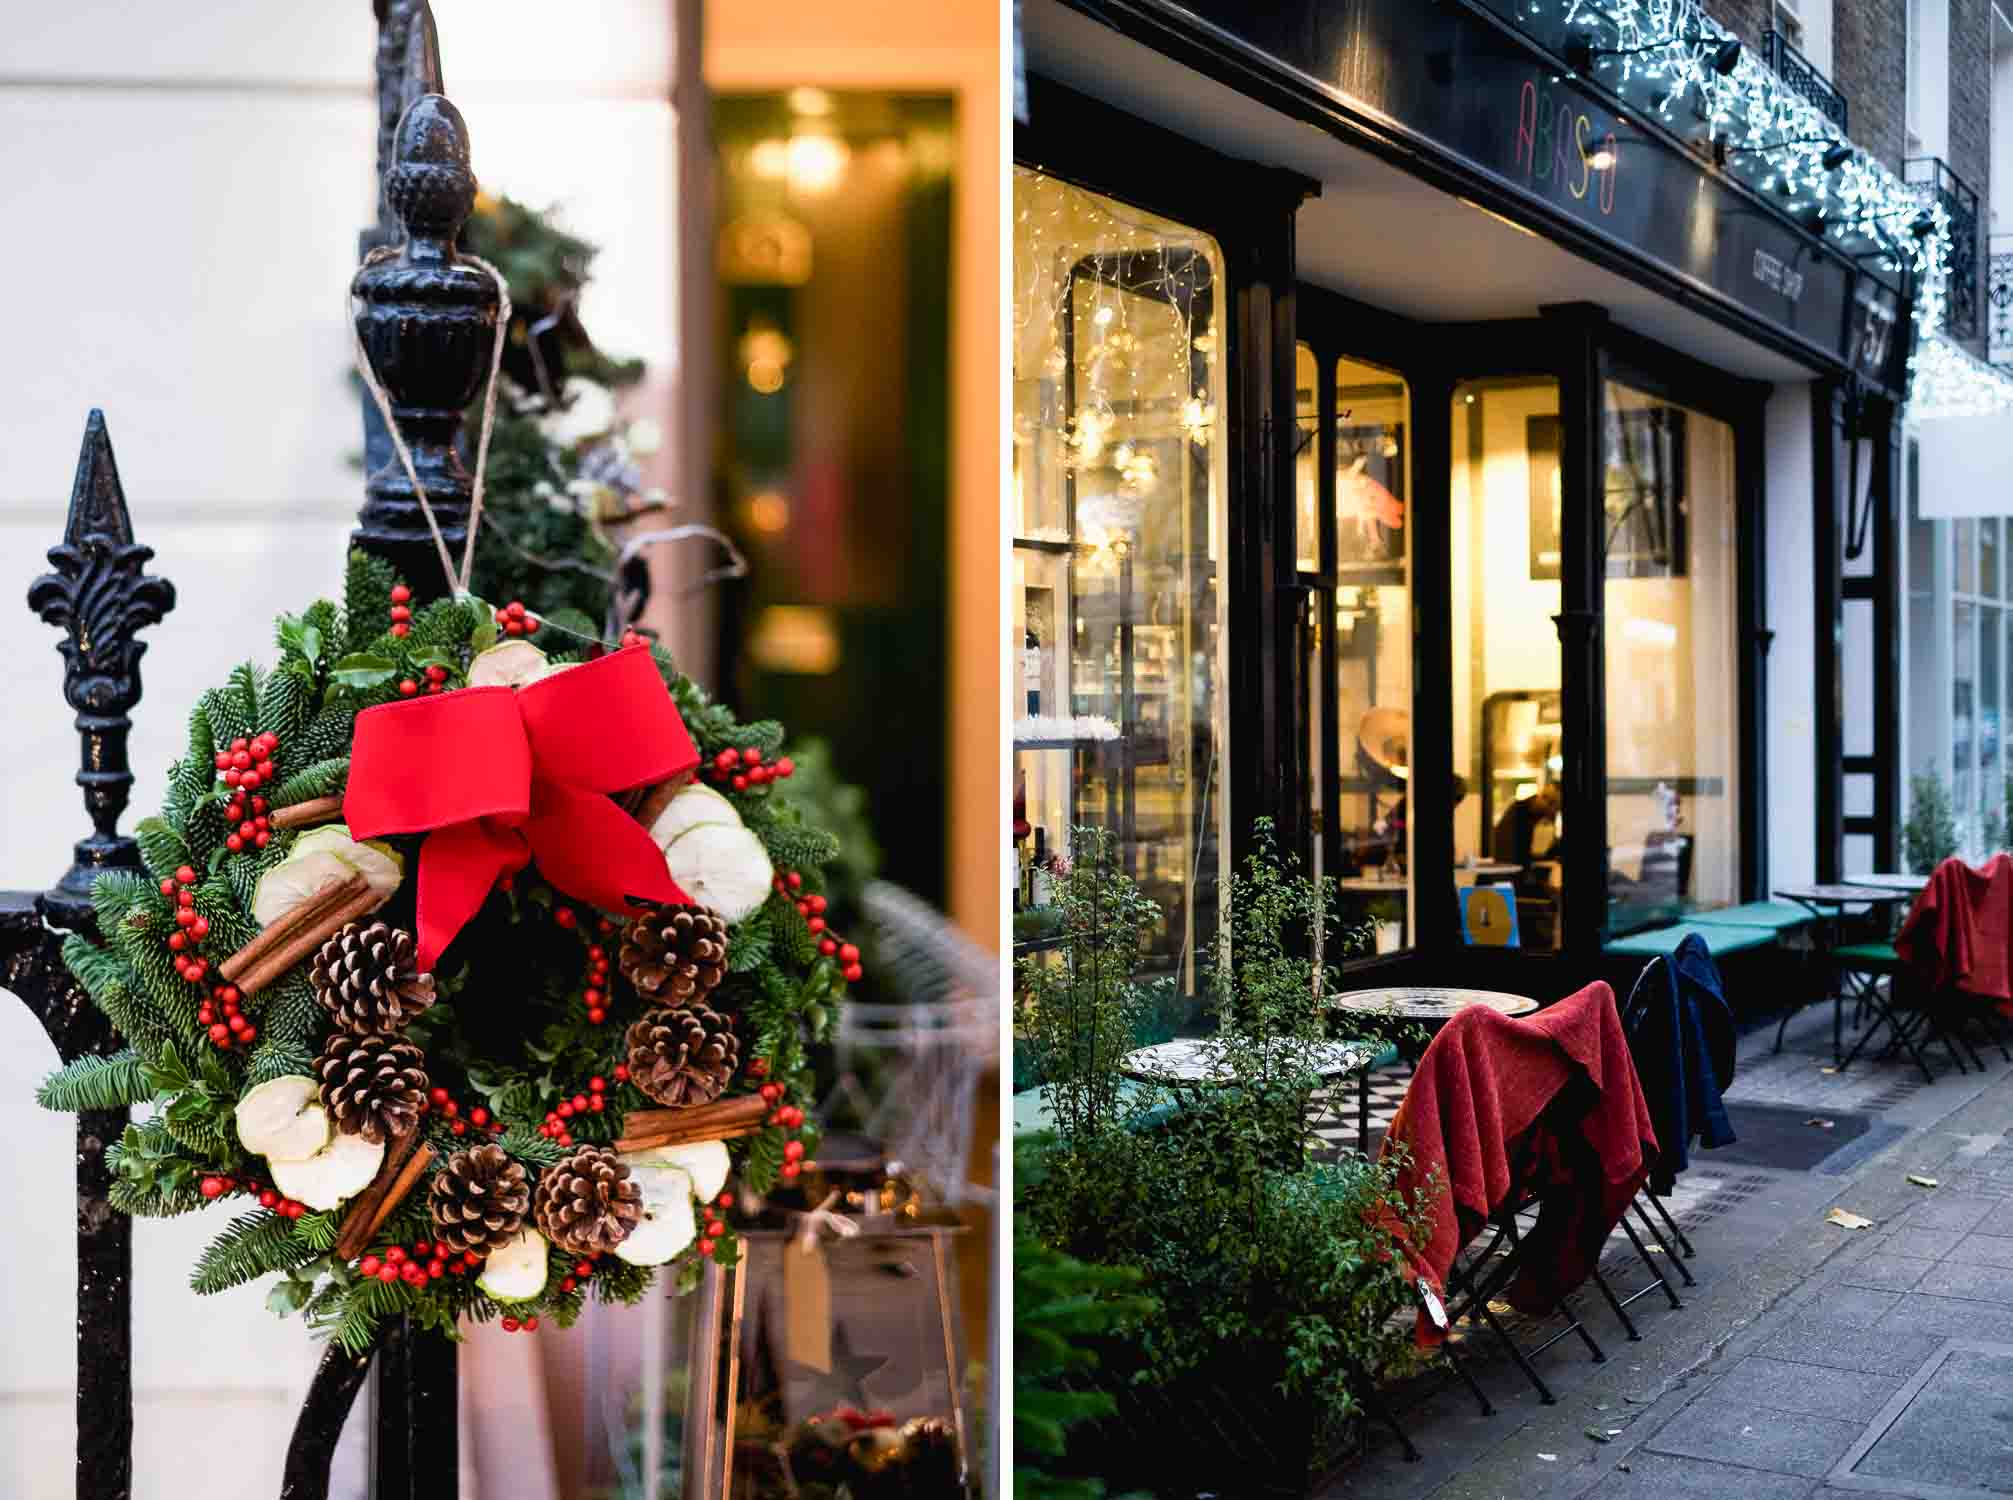 Christmas decorations in Connaught Village, London